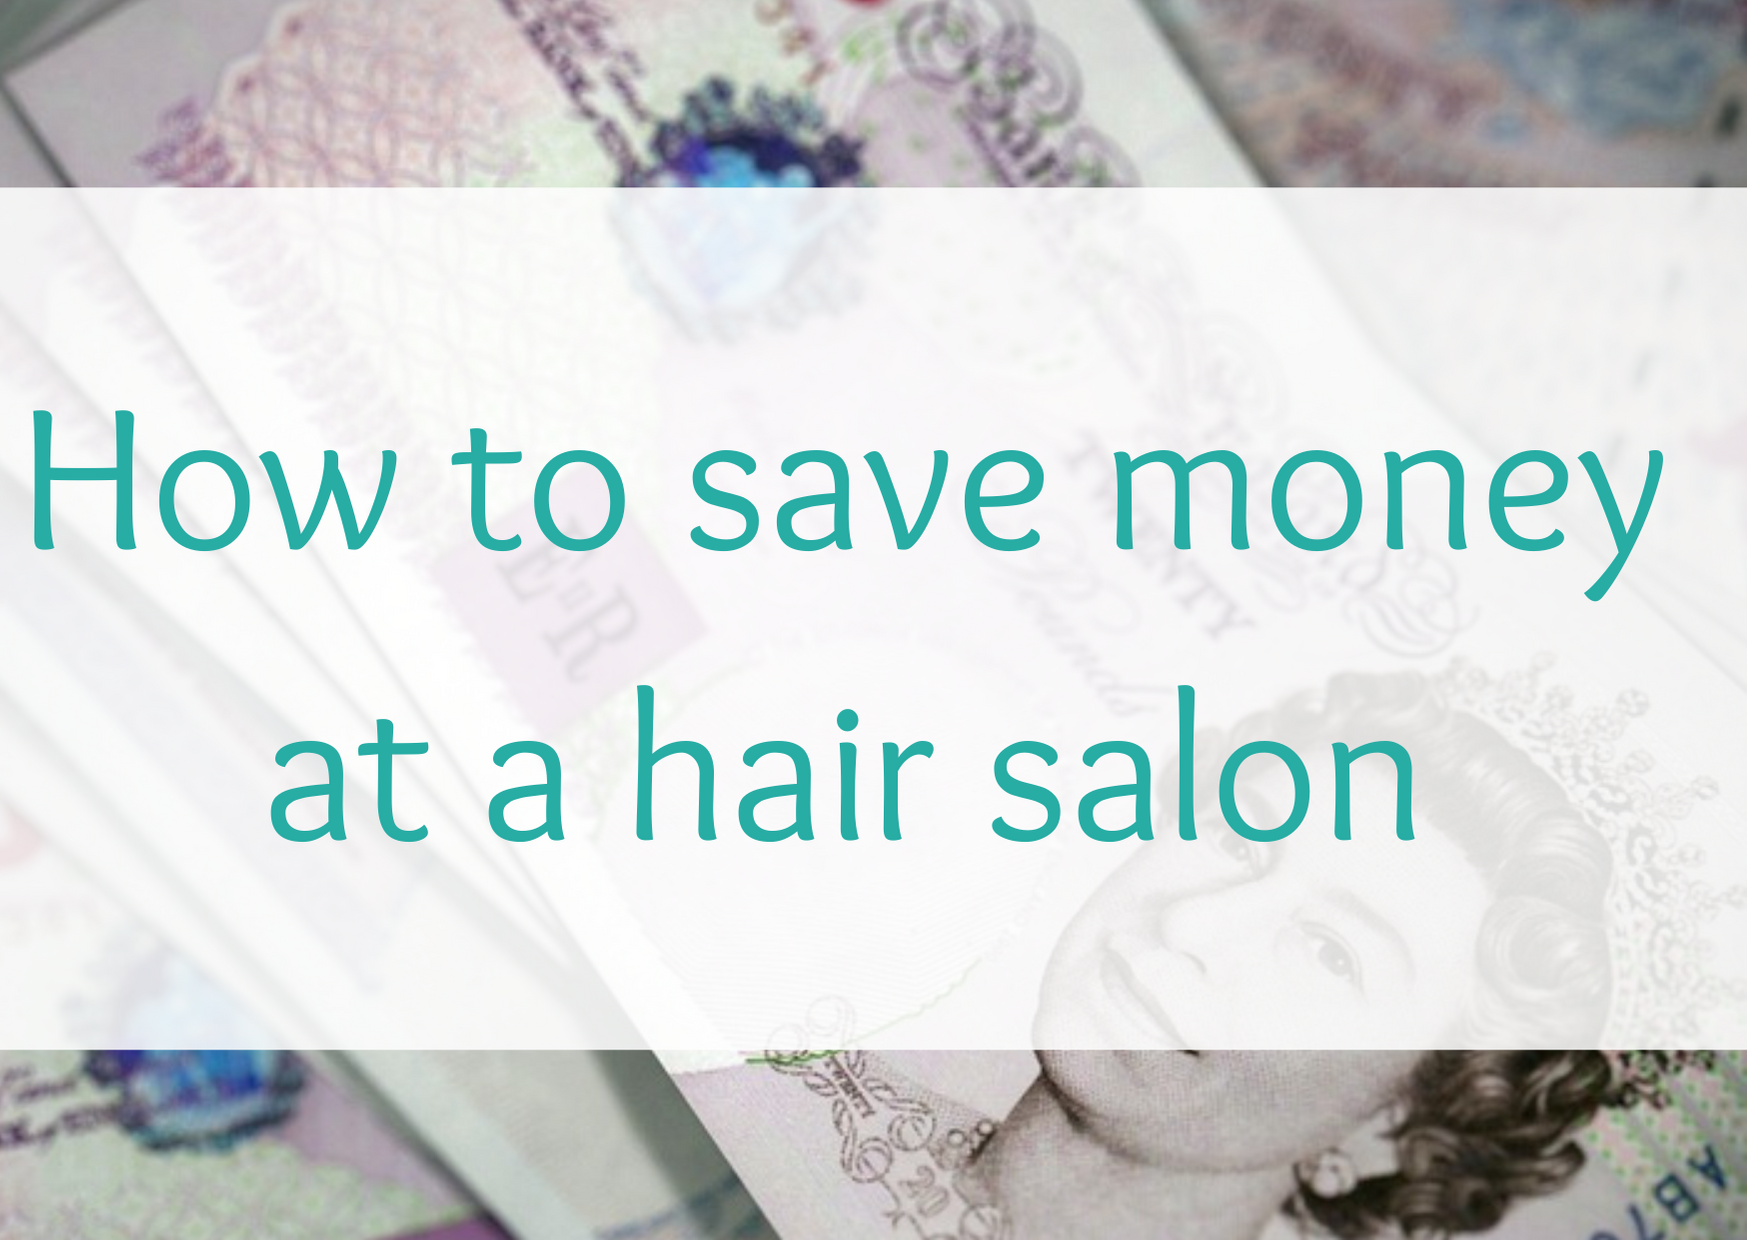 Beauty tips: how to save money at a hair salon